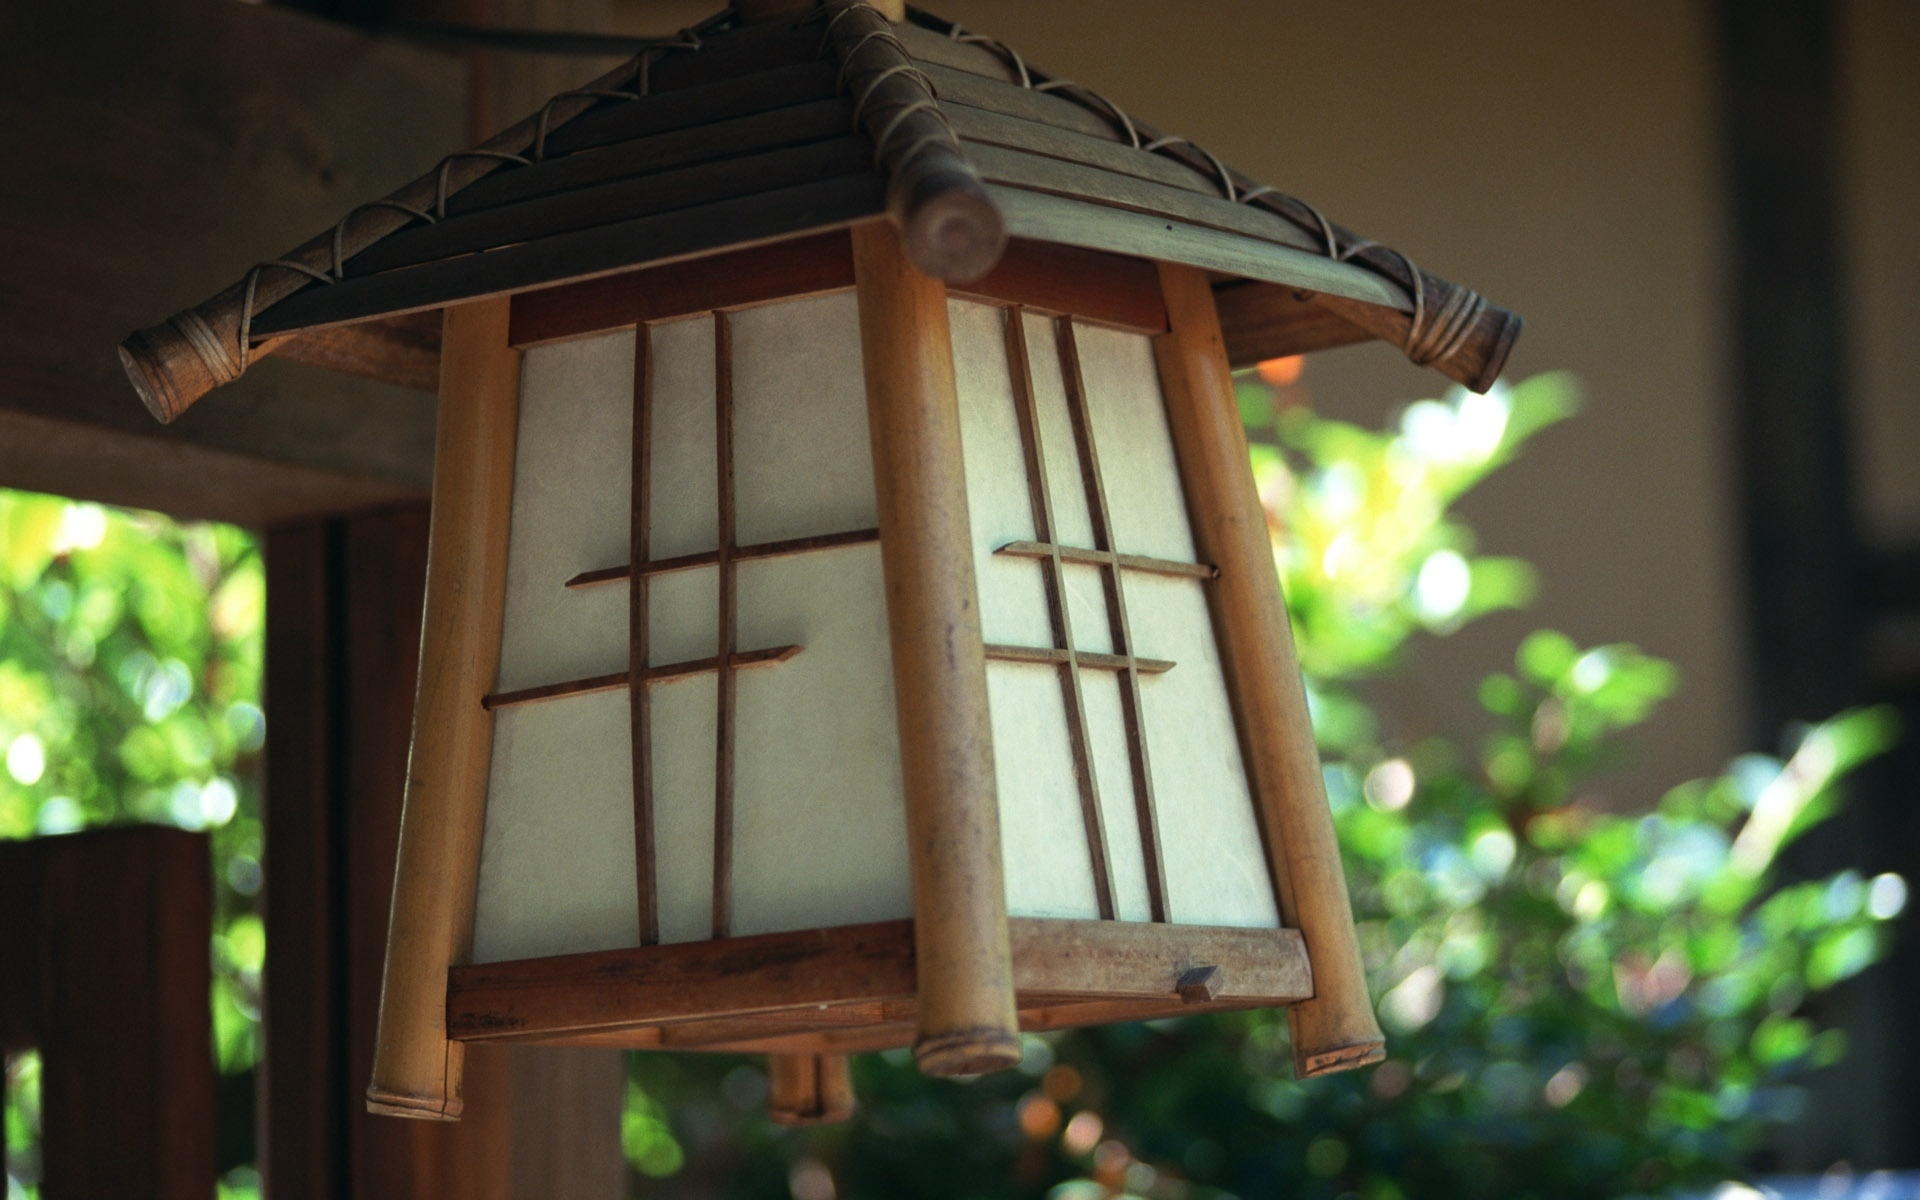 Japanese lamp for 1920 x 1200 widescreen resolution